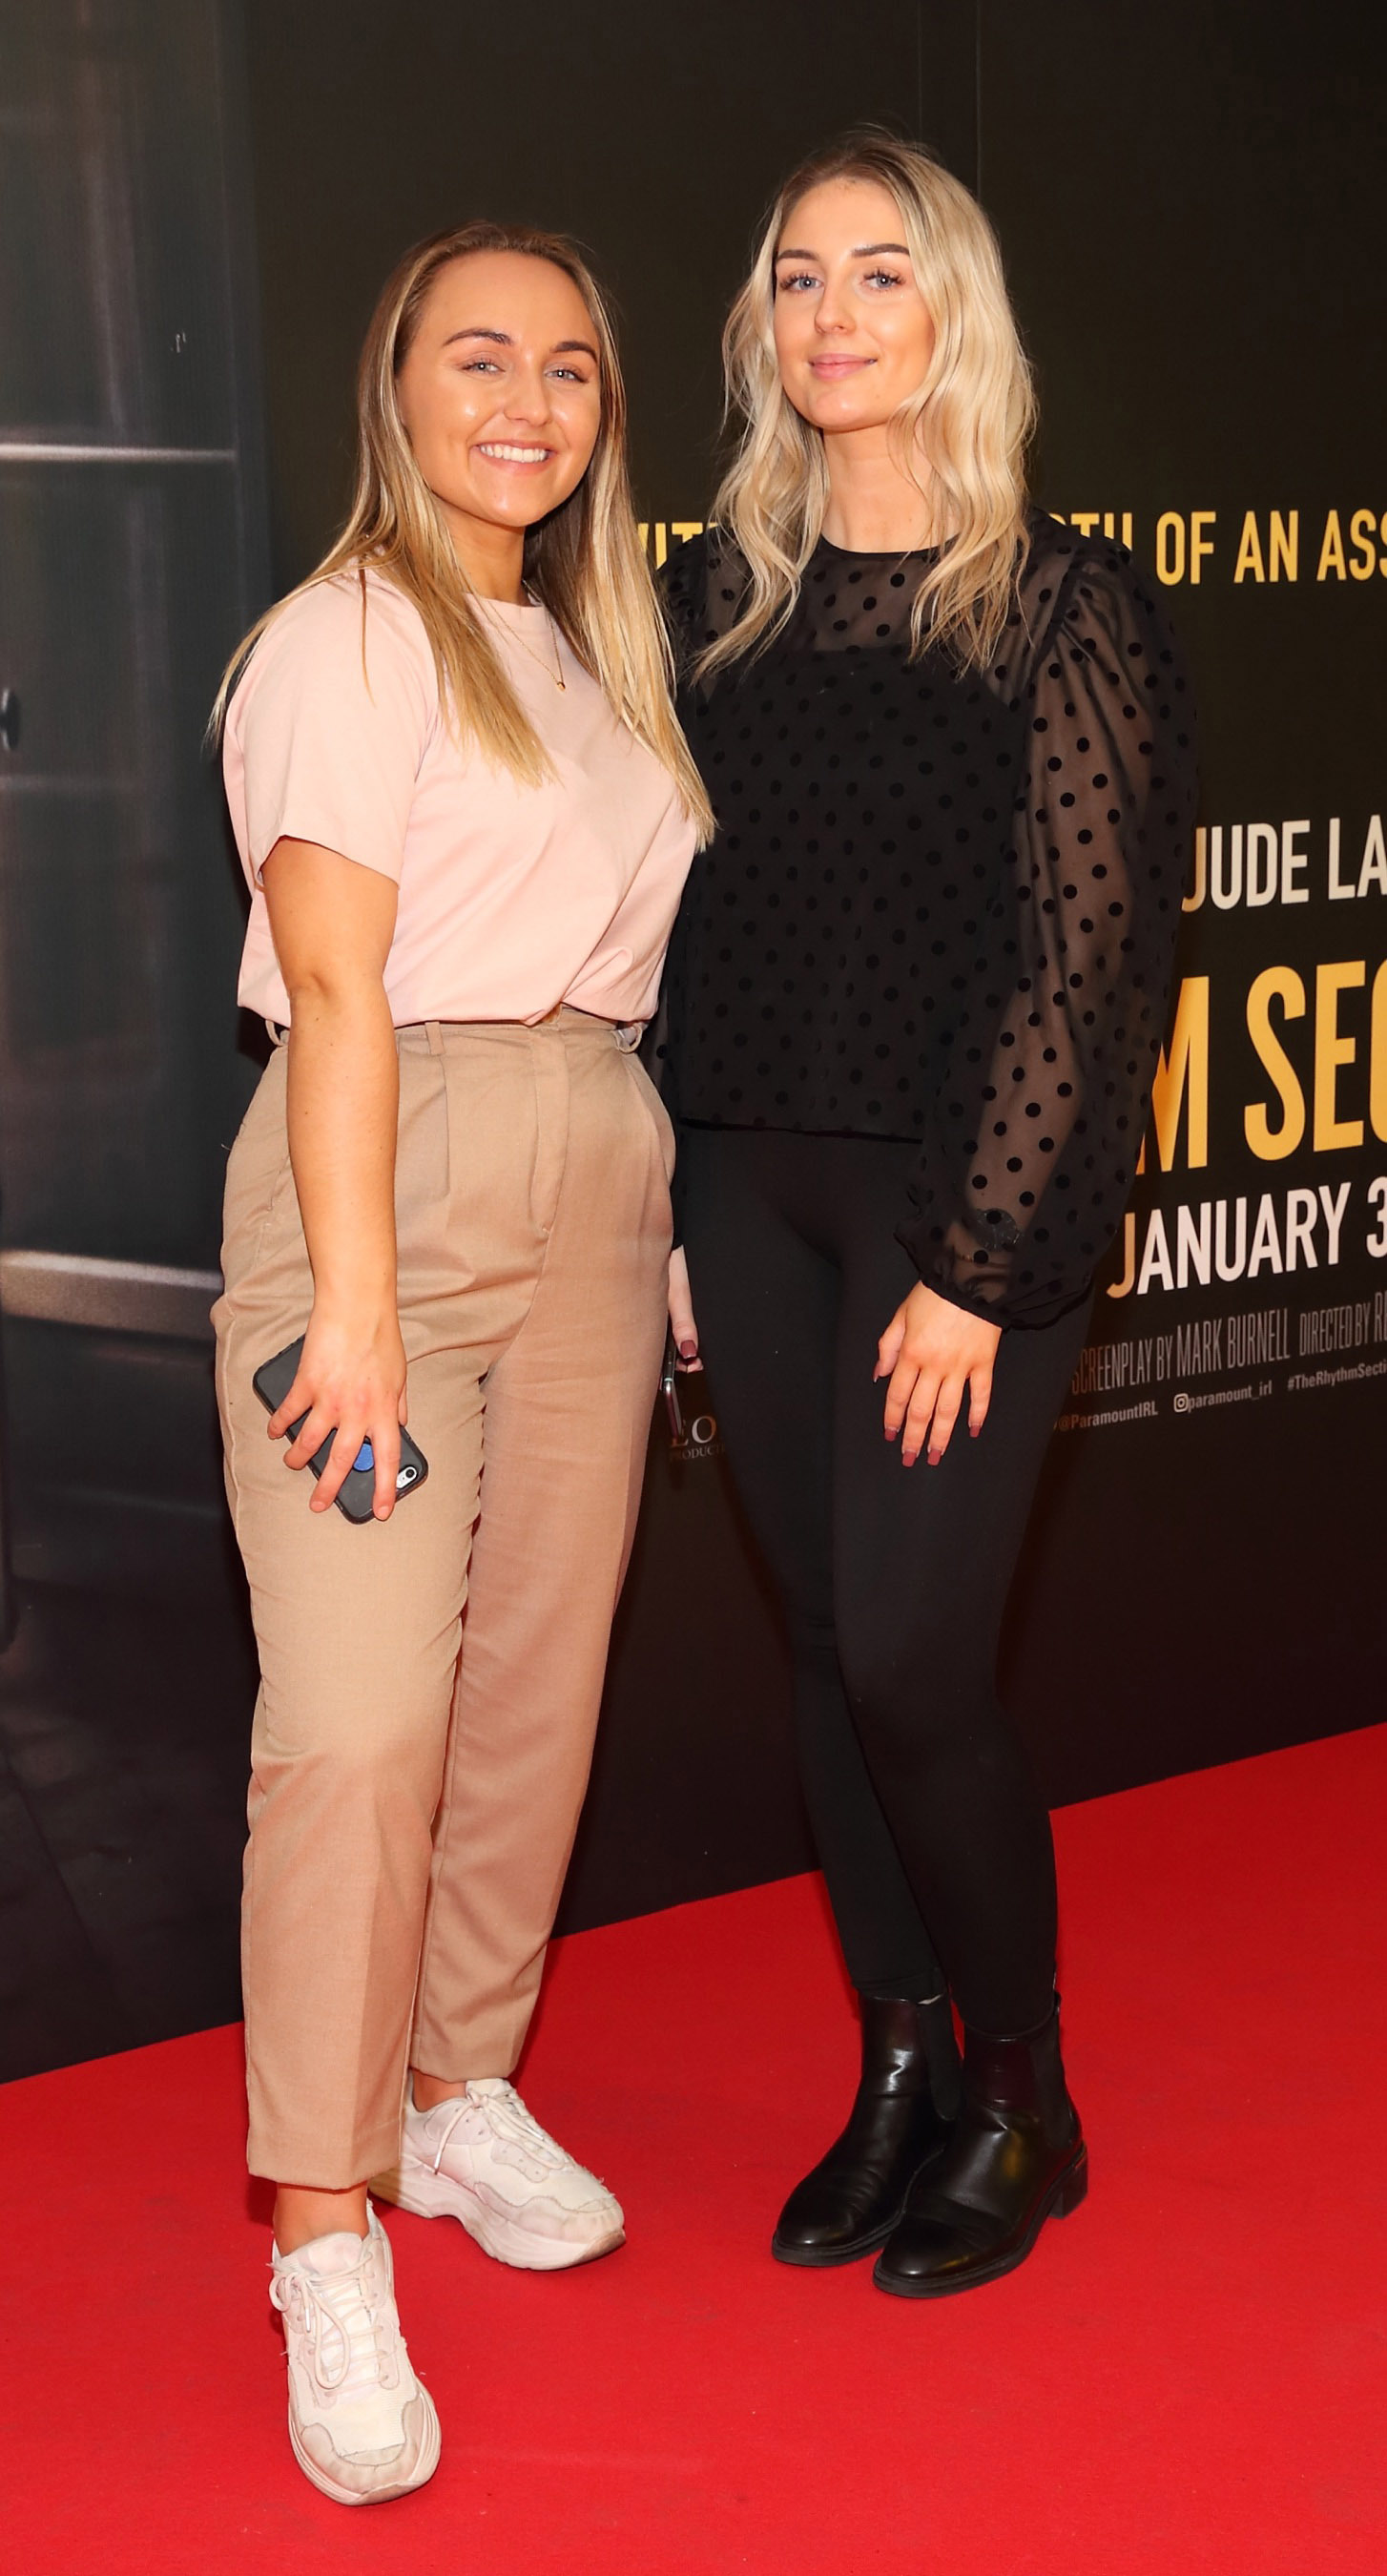 Derbhla Keogh and Mairead Ryan pictured at the special preview screening of The Rhythm Section at the Light House Cinema, Dublin. Pic: Brian McEvoy Photography